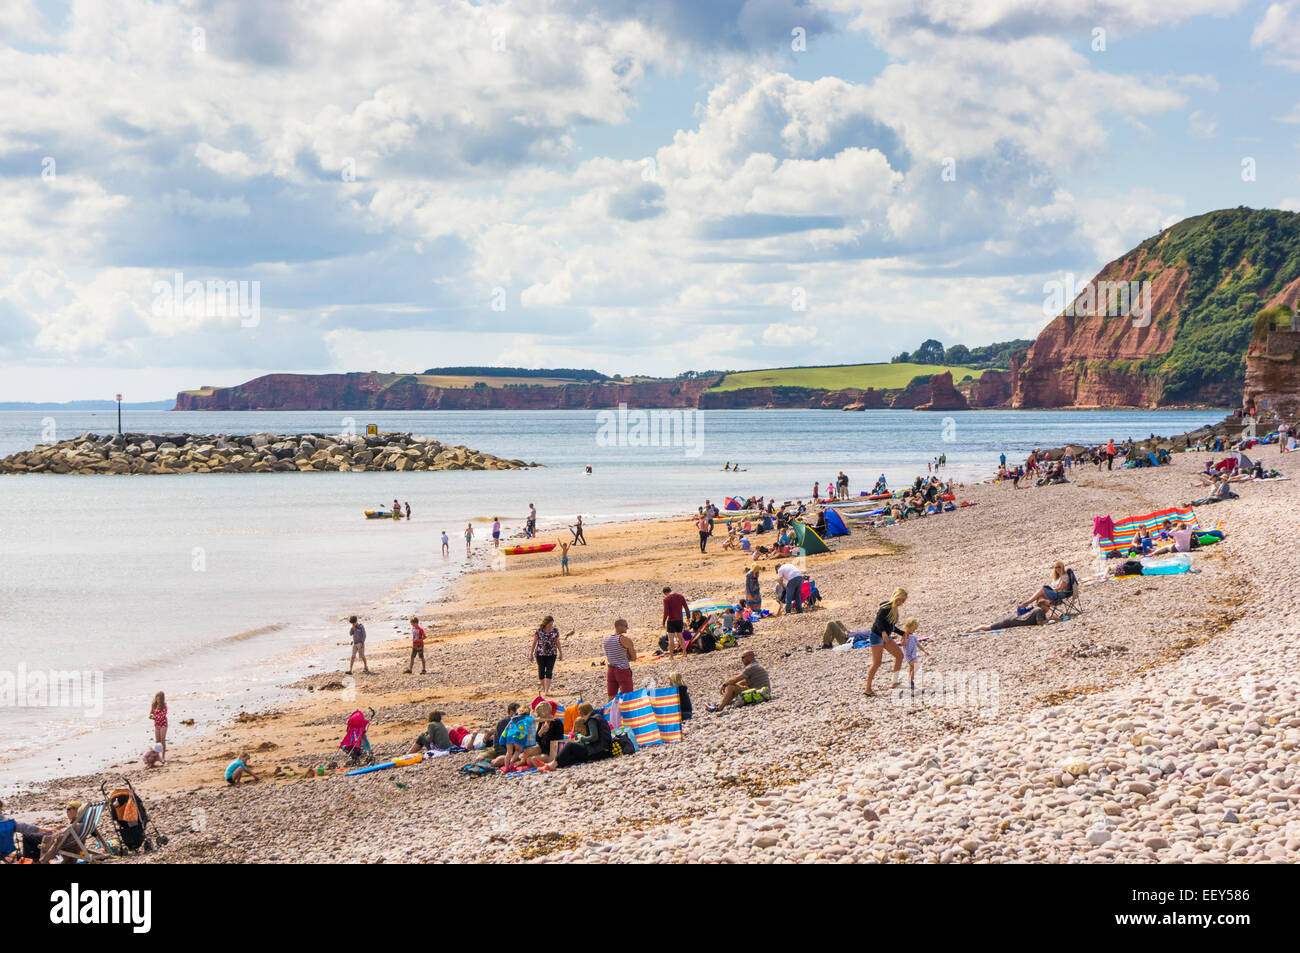 Devon coast - People and families sunbathing on the beach in summer and swimming on the Jurassic Coast, Devon, UK - Stock Image